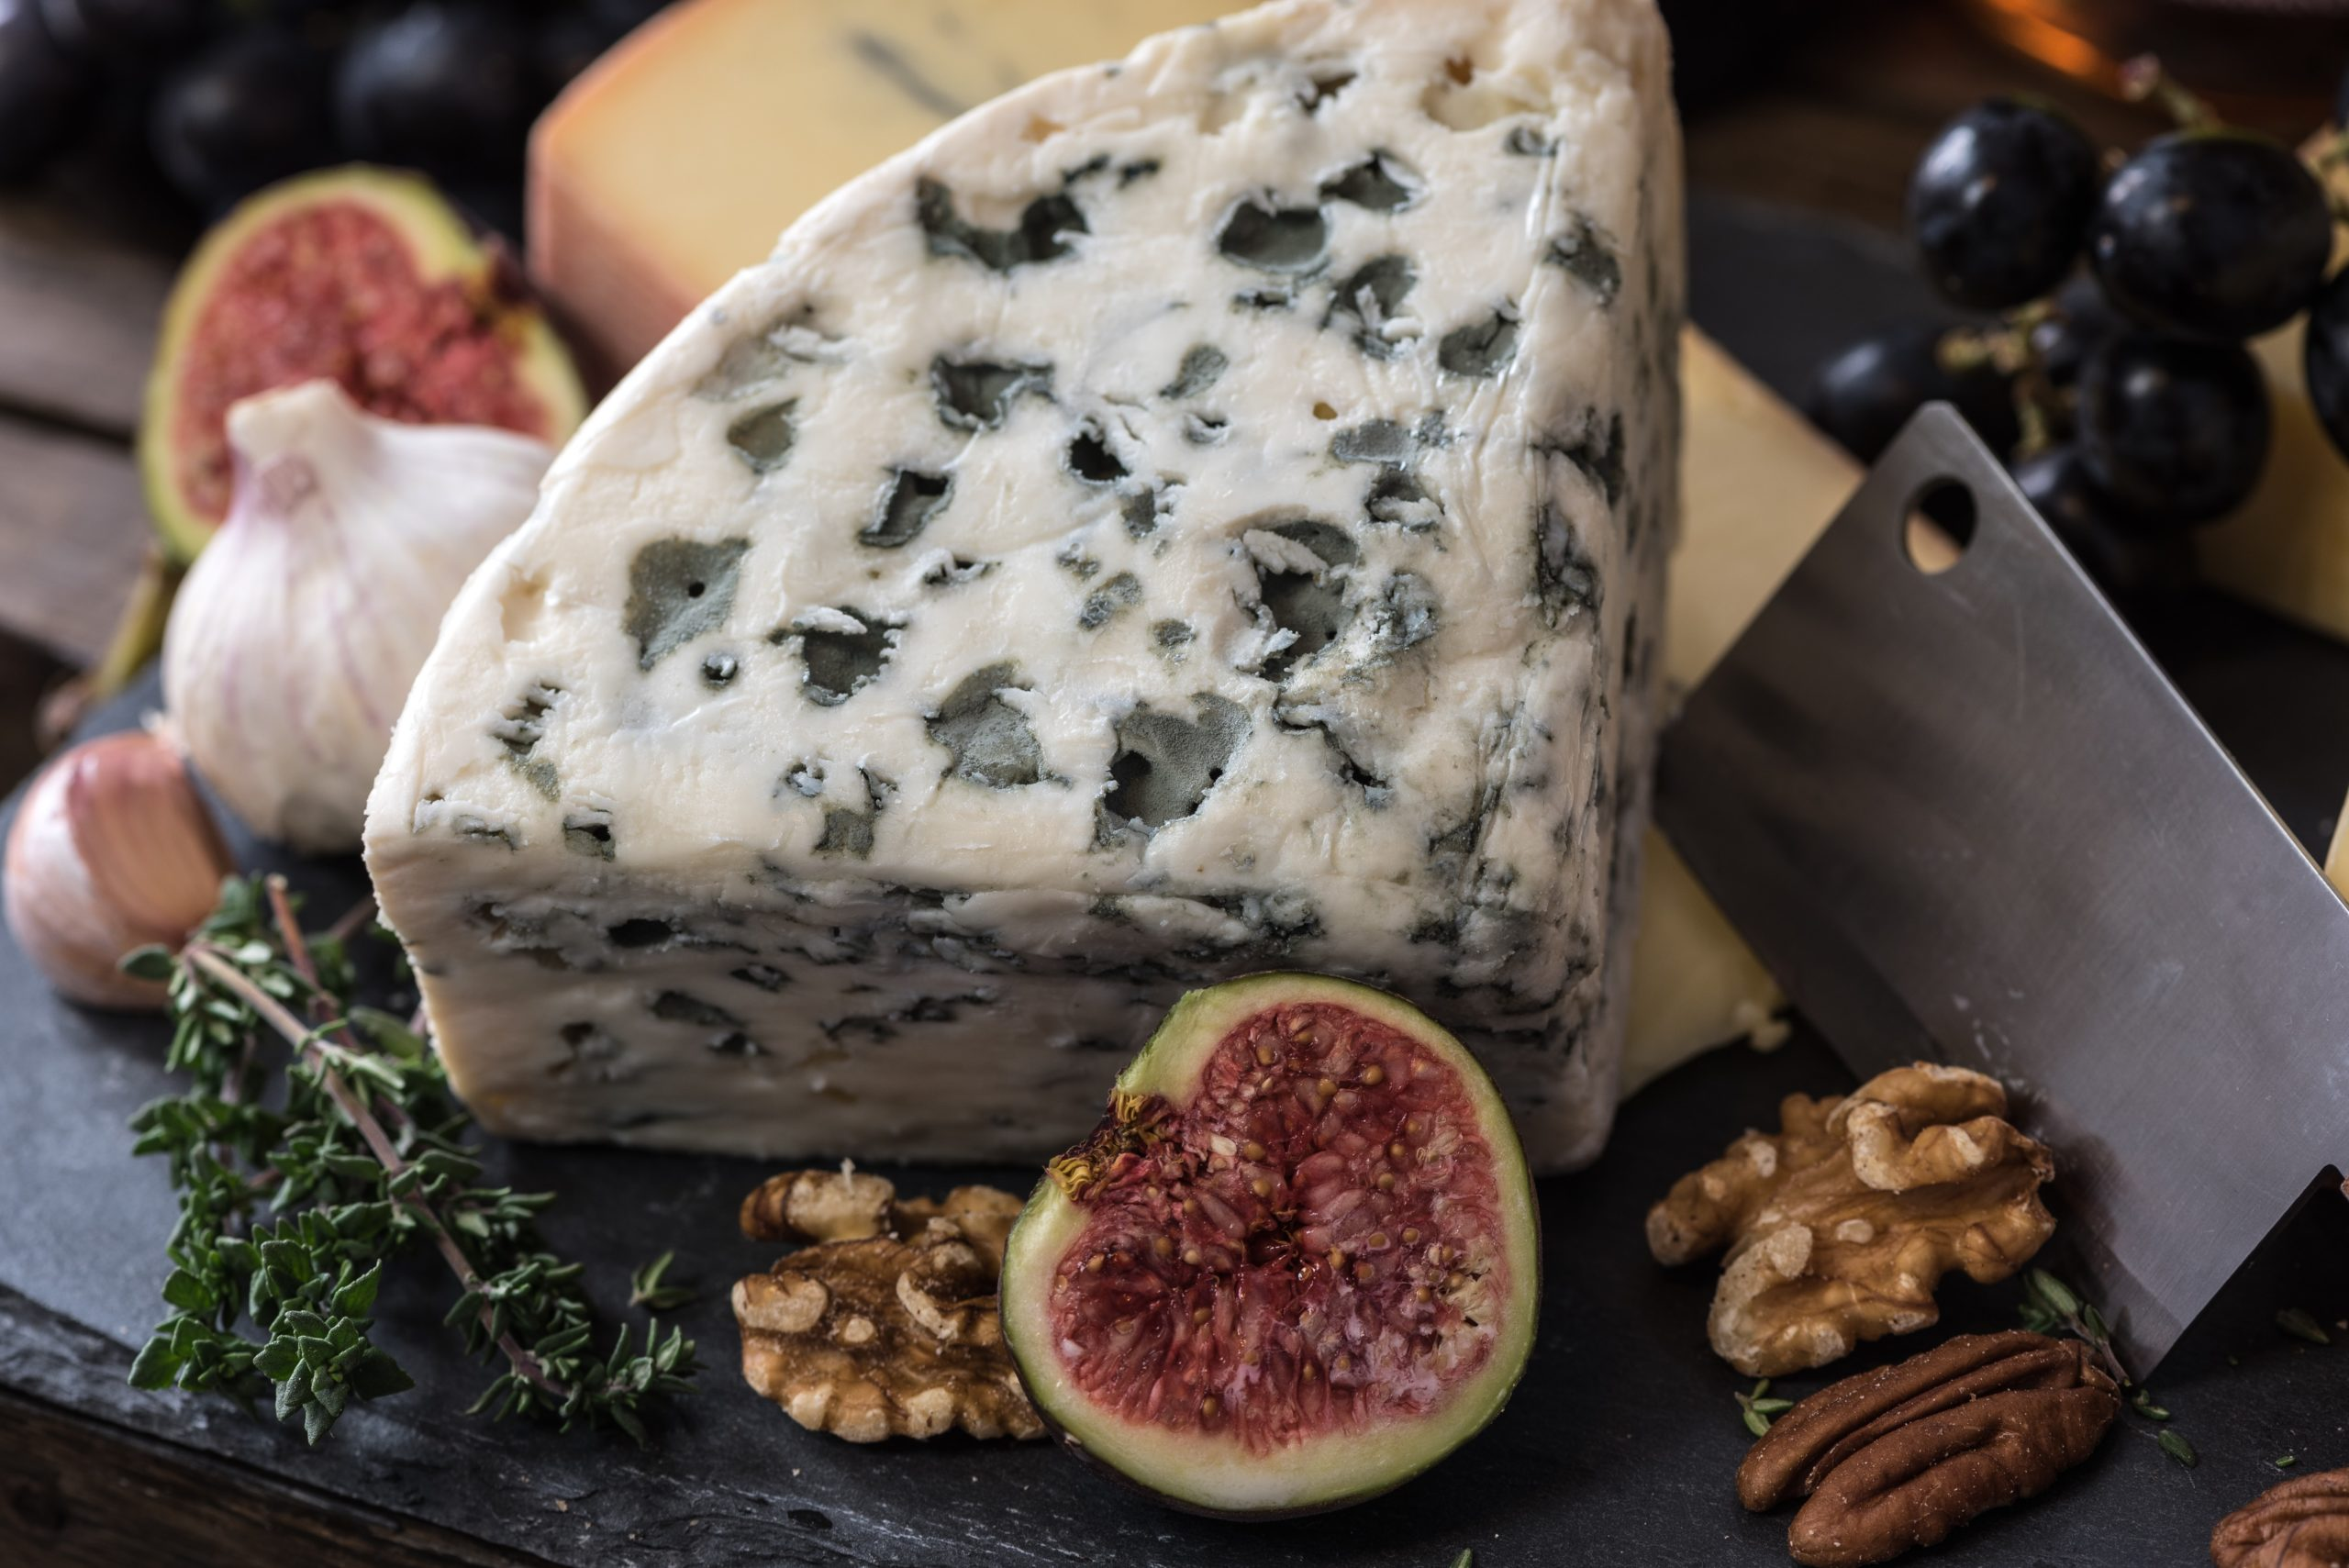 Le meilleur accord vin/fromage fort